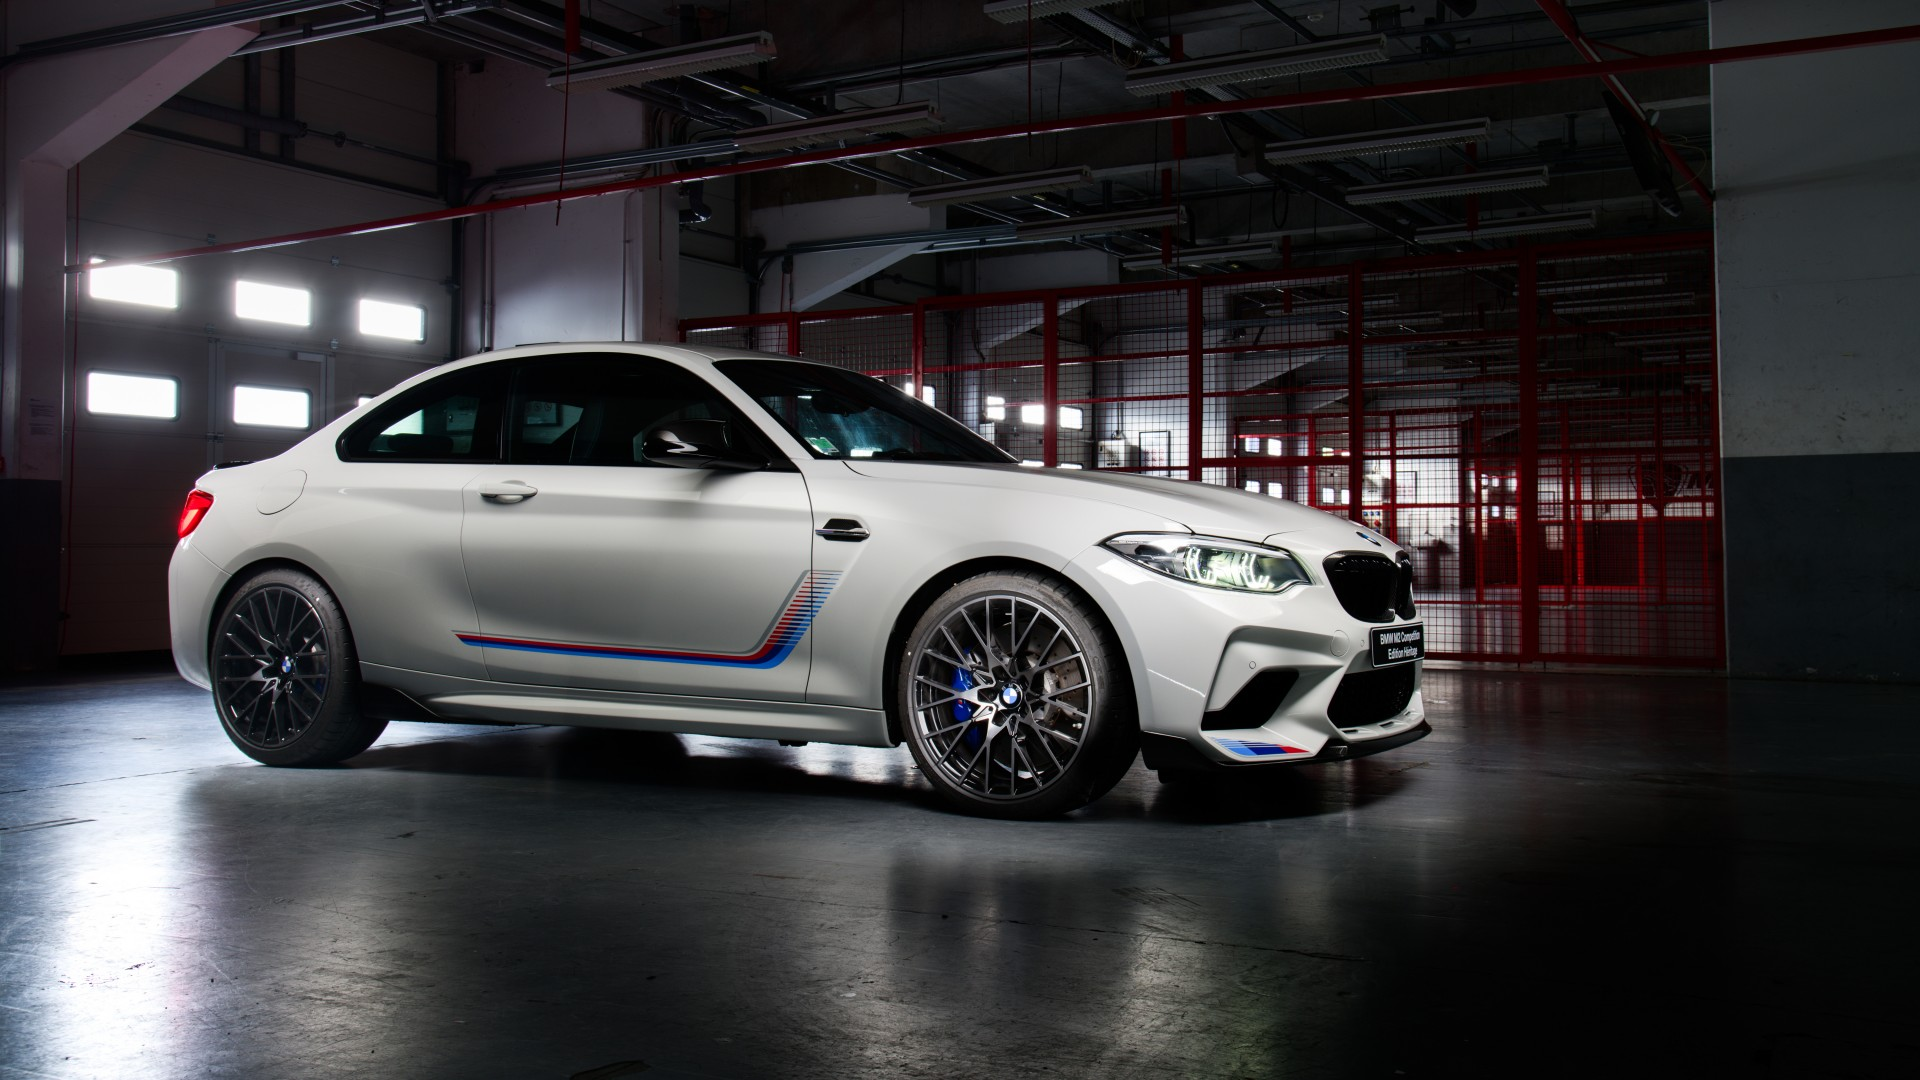 Cars Wallpapers 2014 Hd Download Bmw M2 Competition Edition Heritage 2019 5k Wallpaper Hd